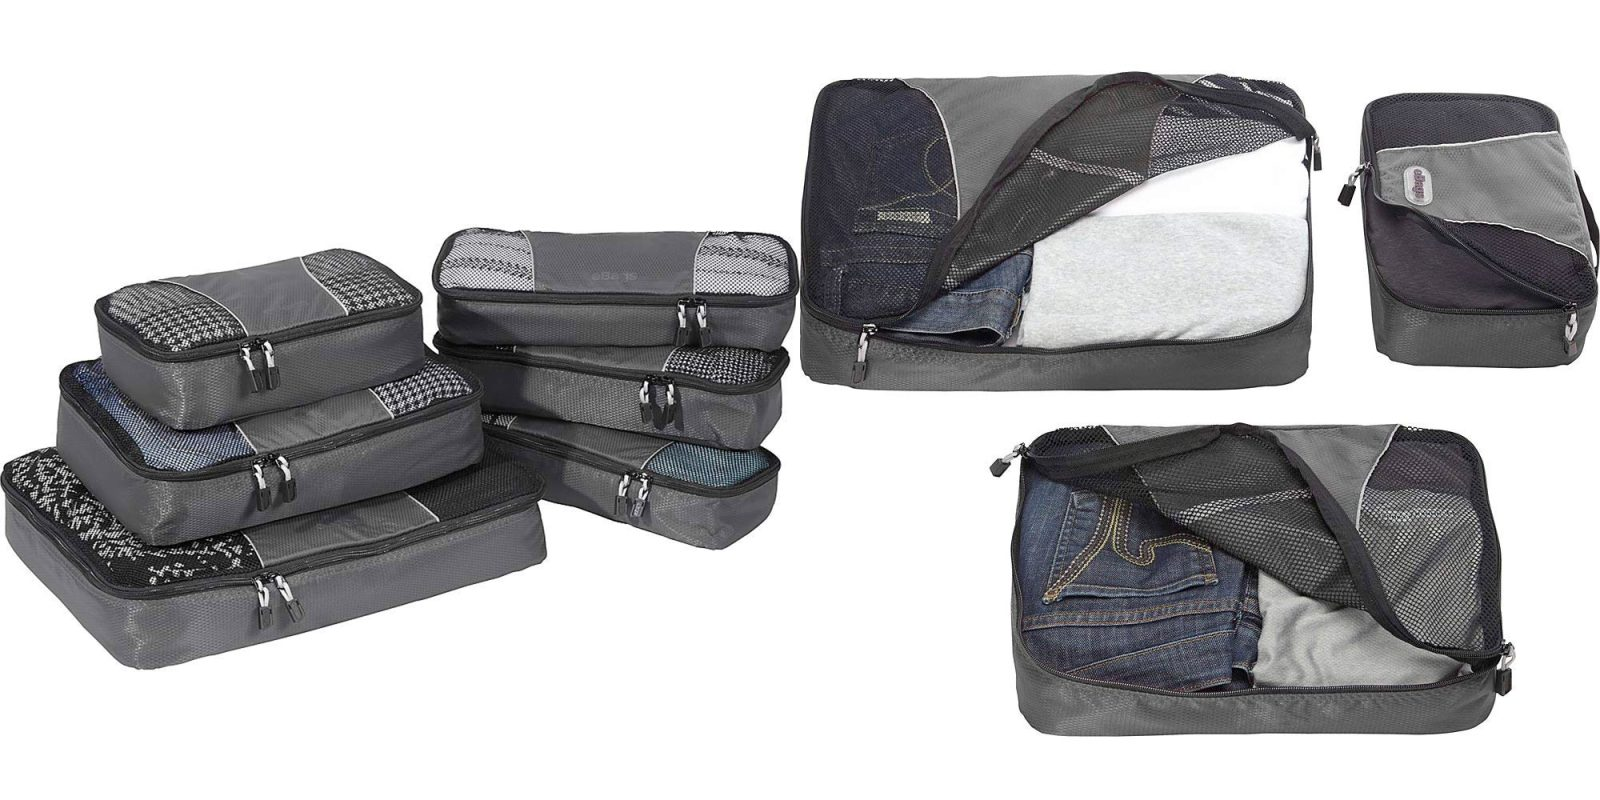 600c15d0ca23 Stay organized on your next trip w/ this 6-piece eBags packing cube ...